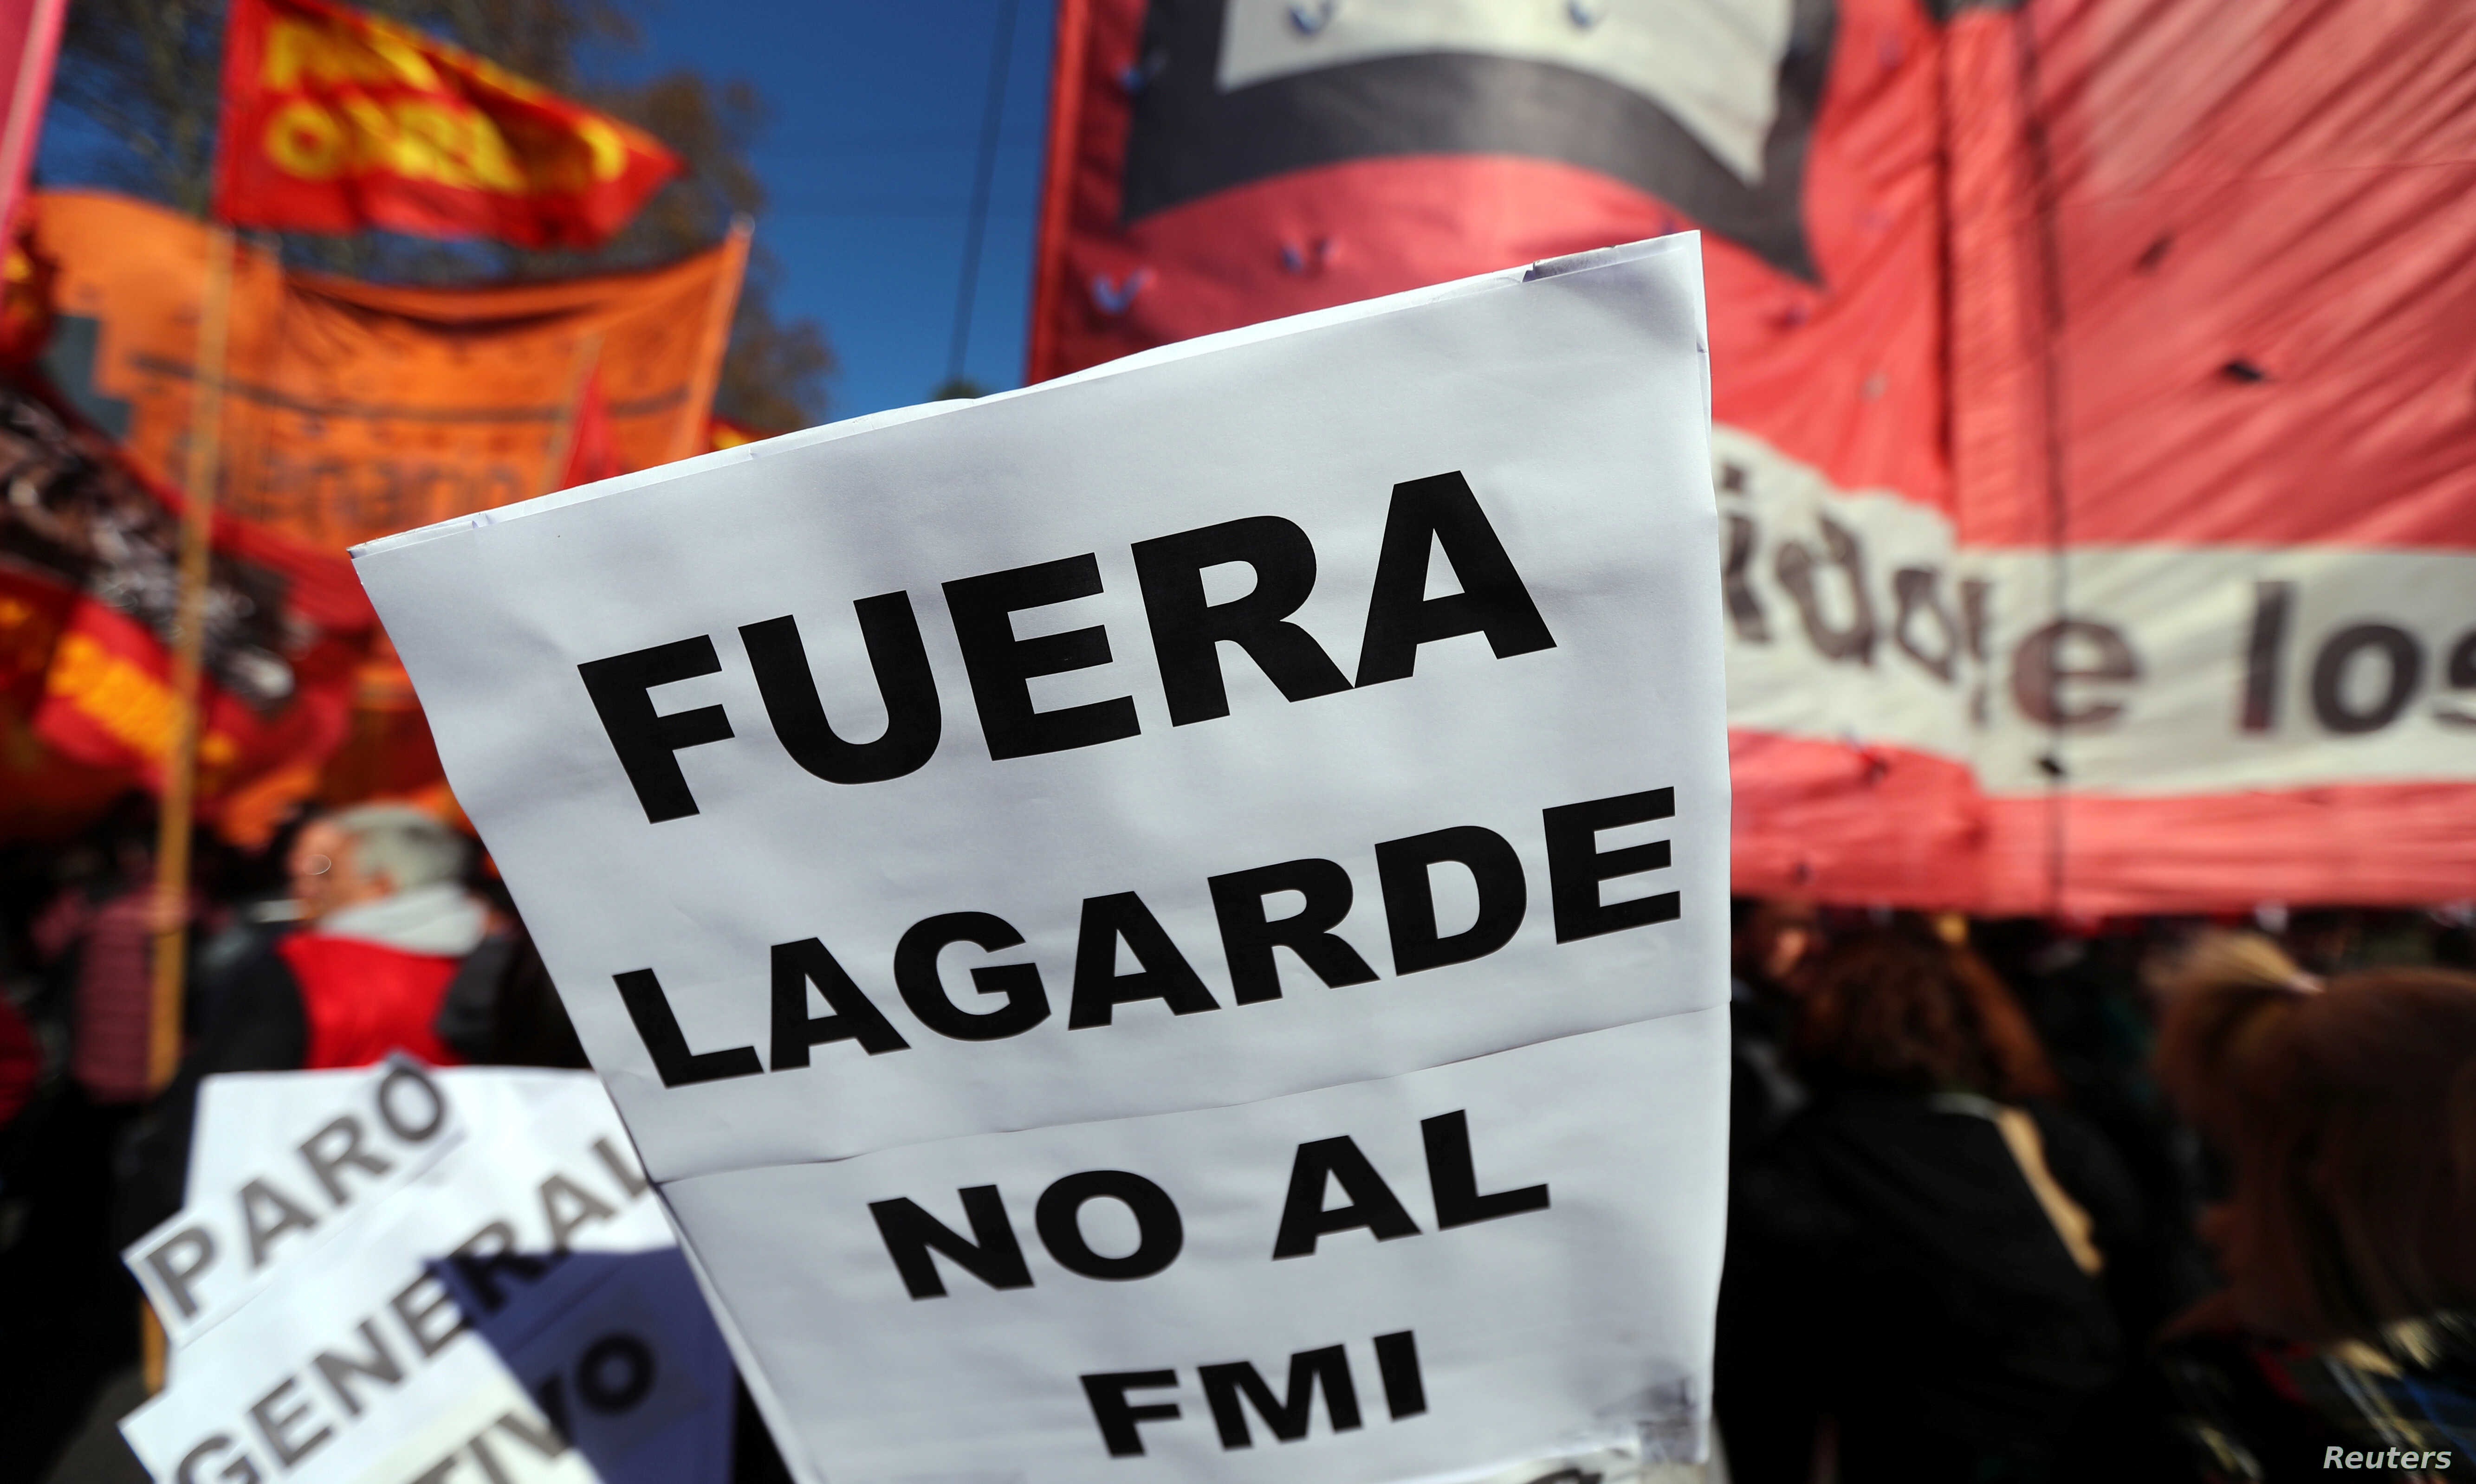 """A sign that reads """"(Christine) Lagarde, get out - No to the IMF (International Monetary Fund)"""" is seen during a protest against the G-20 meeting of finance ministers in Buenos Aires, Argentina, July 21, 2018."""